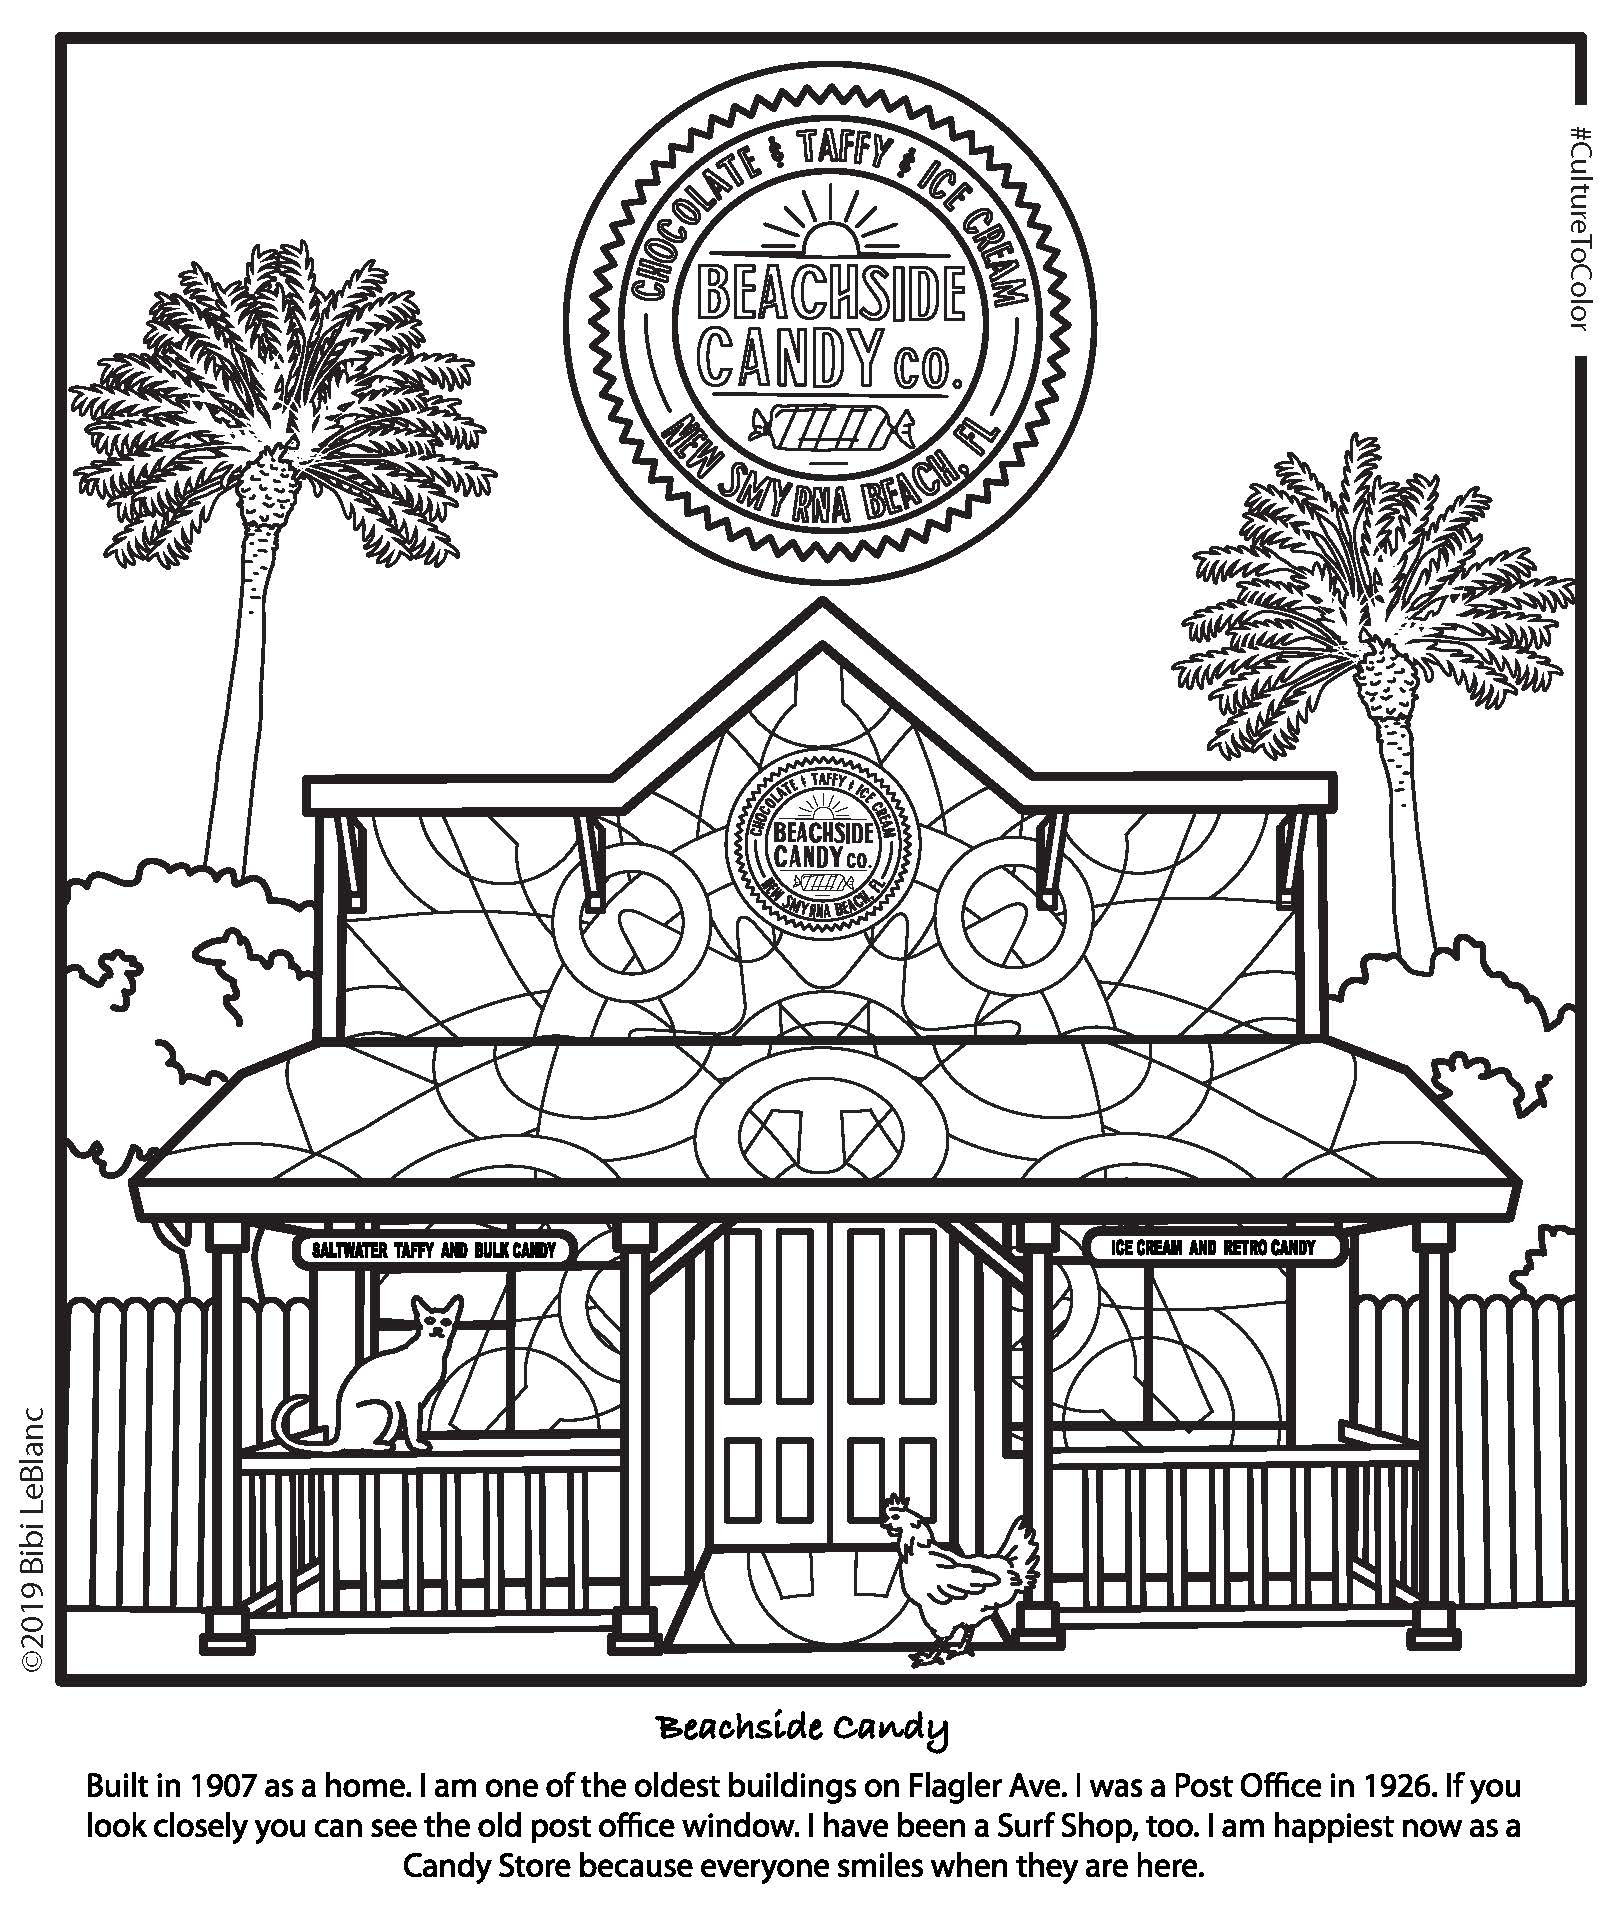 Take a look at this example of a custom design. - The owners at Beachside Candy ordered this custom coloring page to distribute to their own friends and customers.